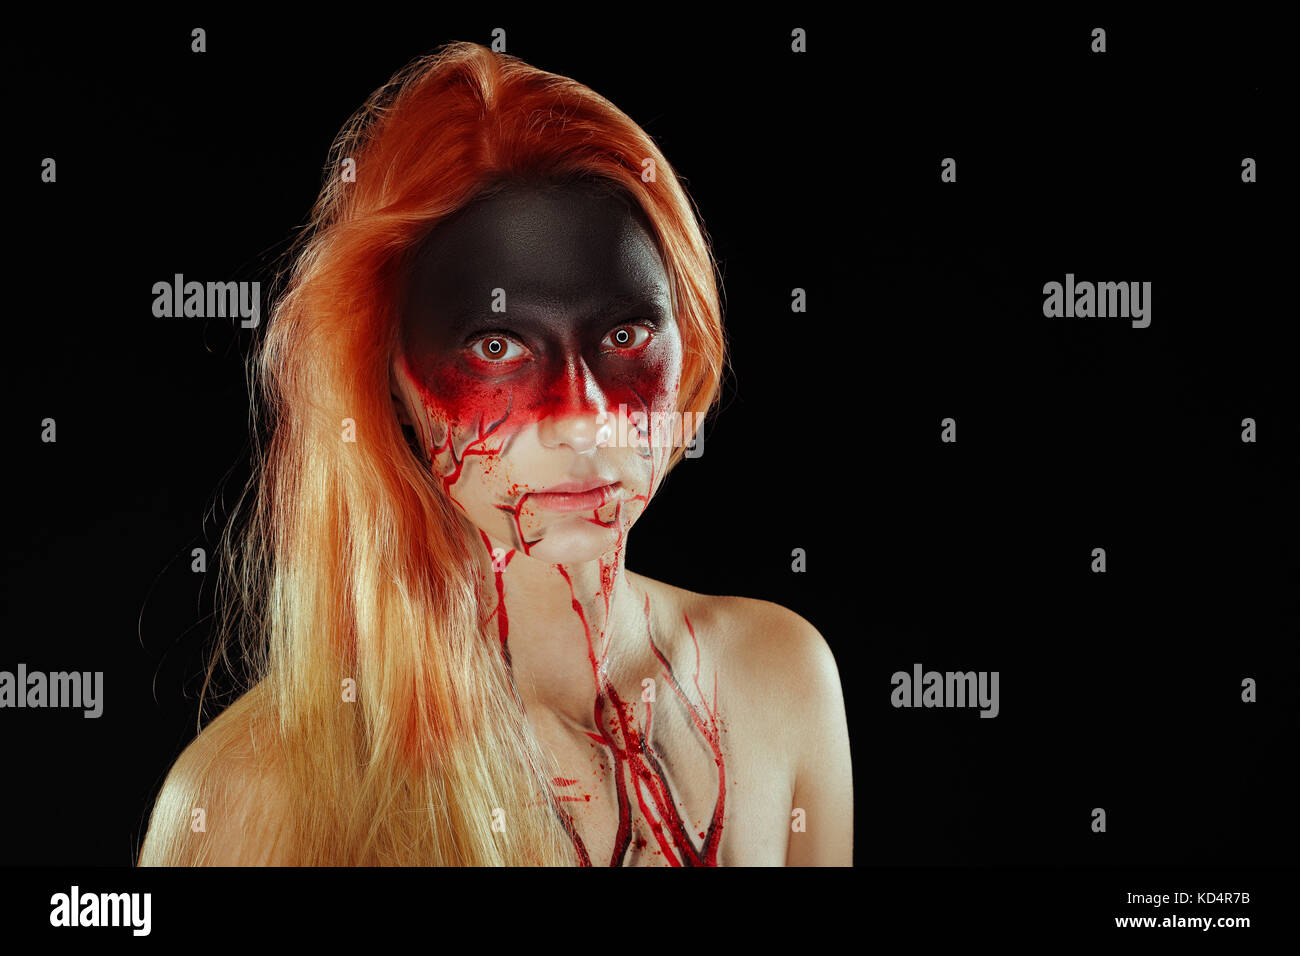 Mystic hero, bloody girl with blood on her face on a dark background. Fantasy horrible and Halloween makeup. Stock Photo